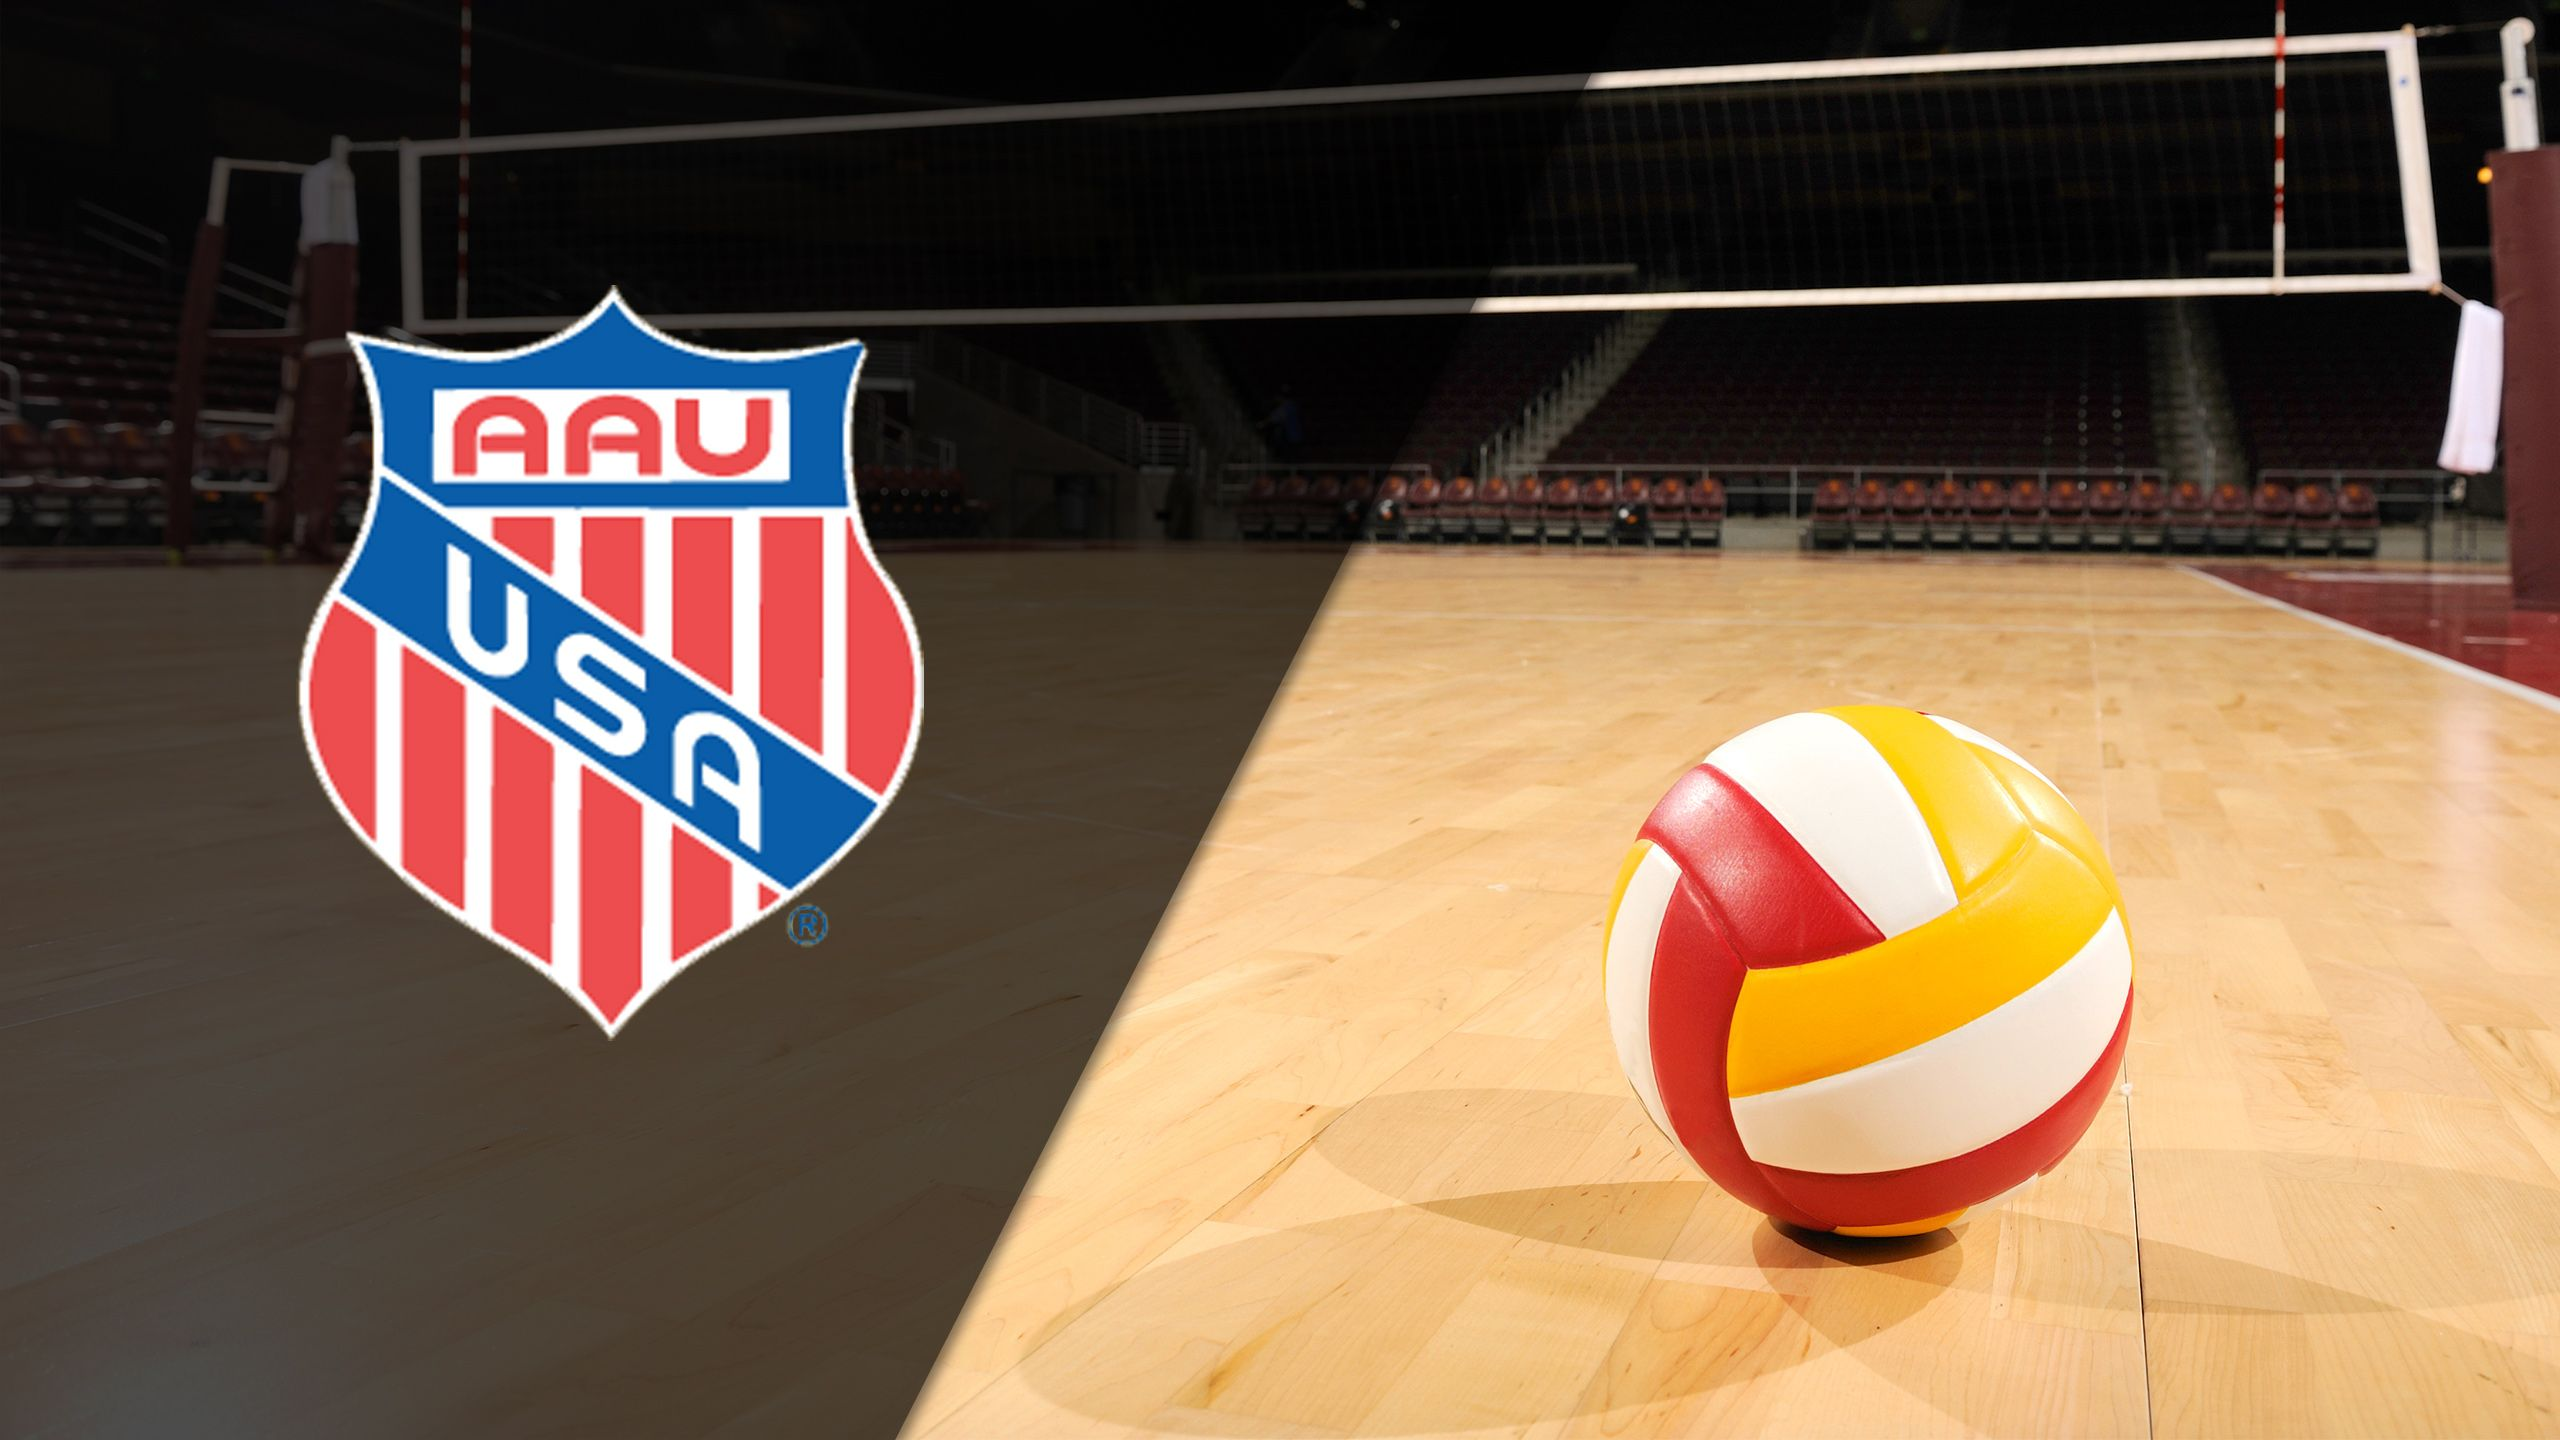 AAU Girls' Junior National Volleyball Championships